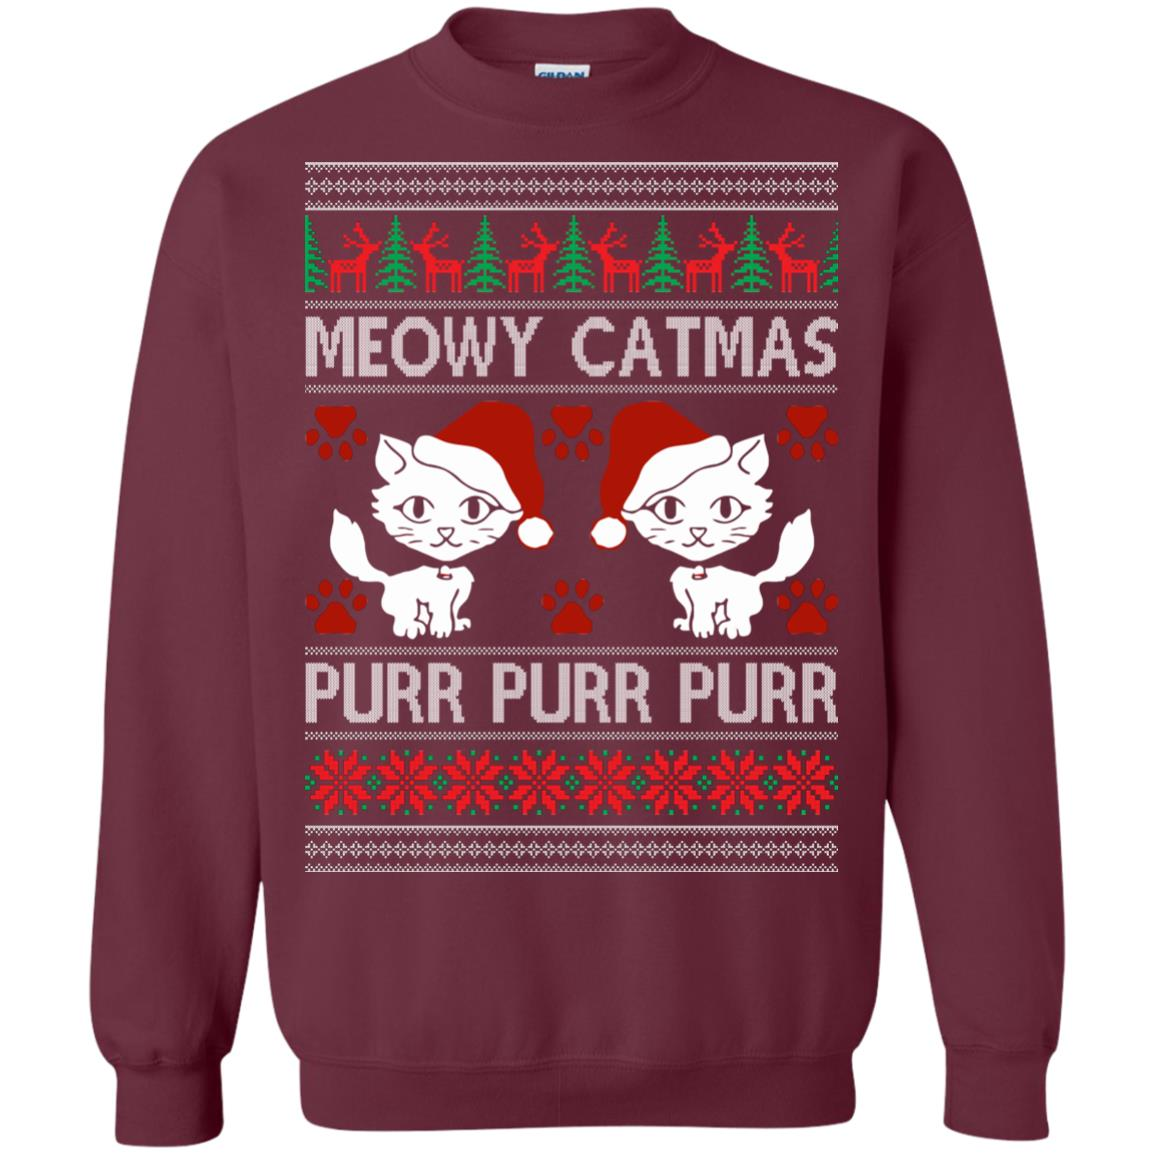 image 1166px Meowy Catmas Purr Purr Christmas Sweater, Cat Lover Sweatshirt